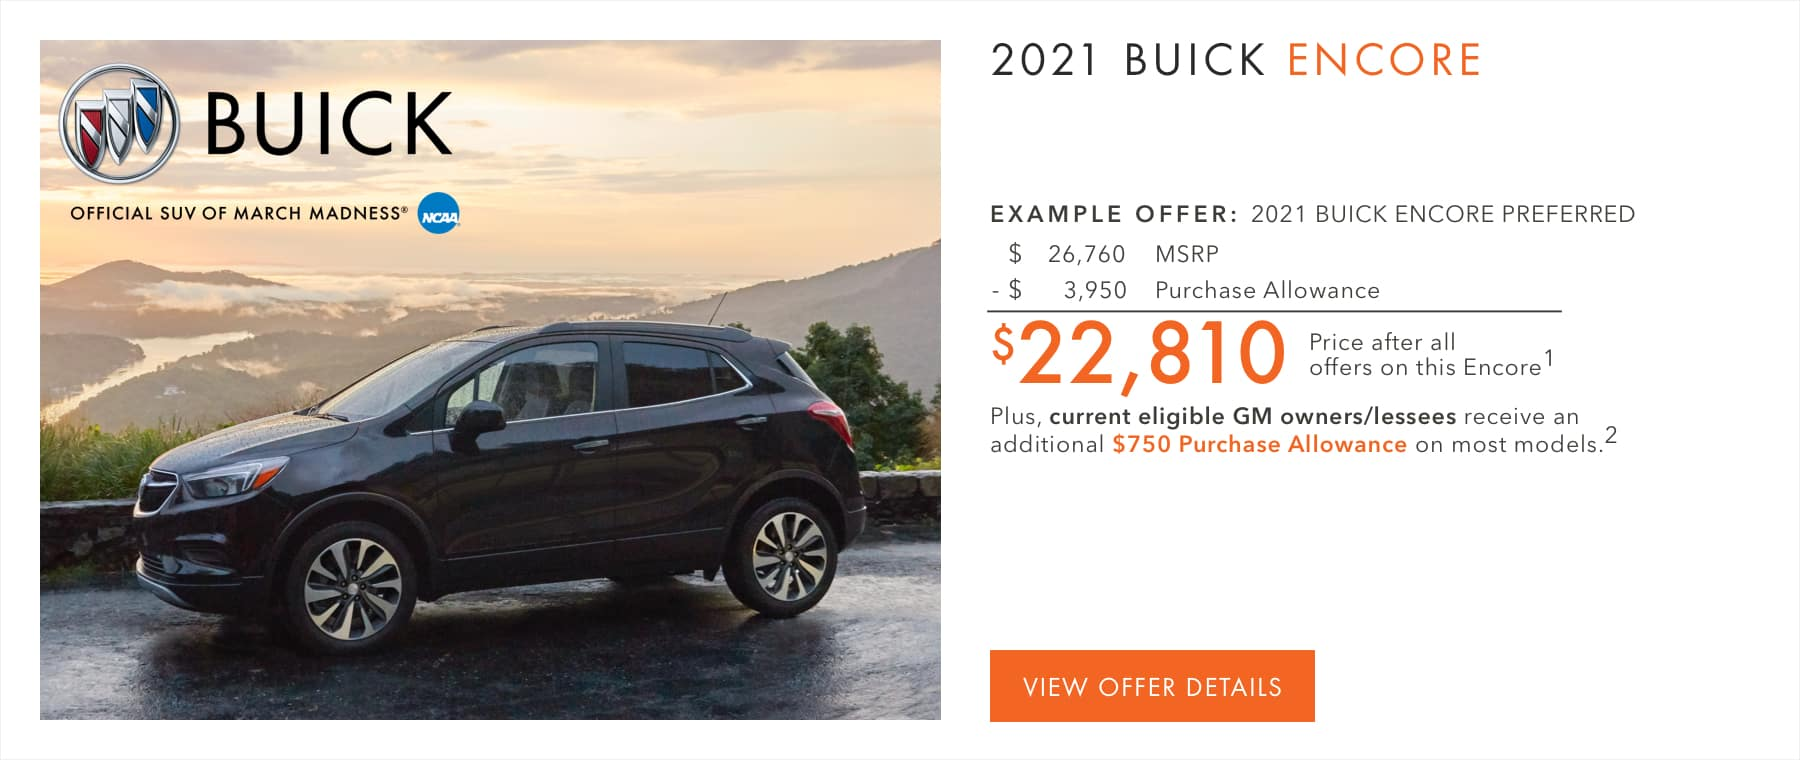 $3,950 Purchase Allowance on most models.1 Plus, current eligible Buick or GMC owners/lessees receive an additional $750 Purchase Allowance on most models.